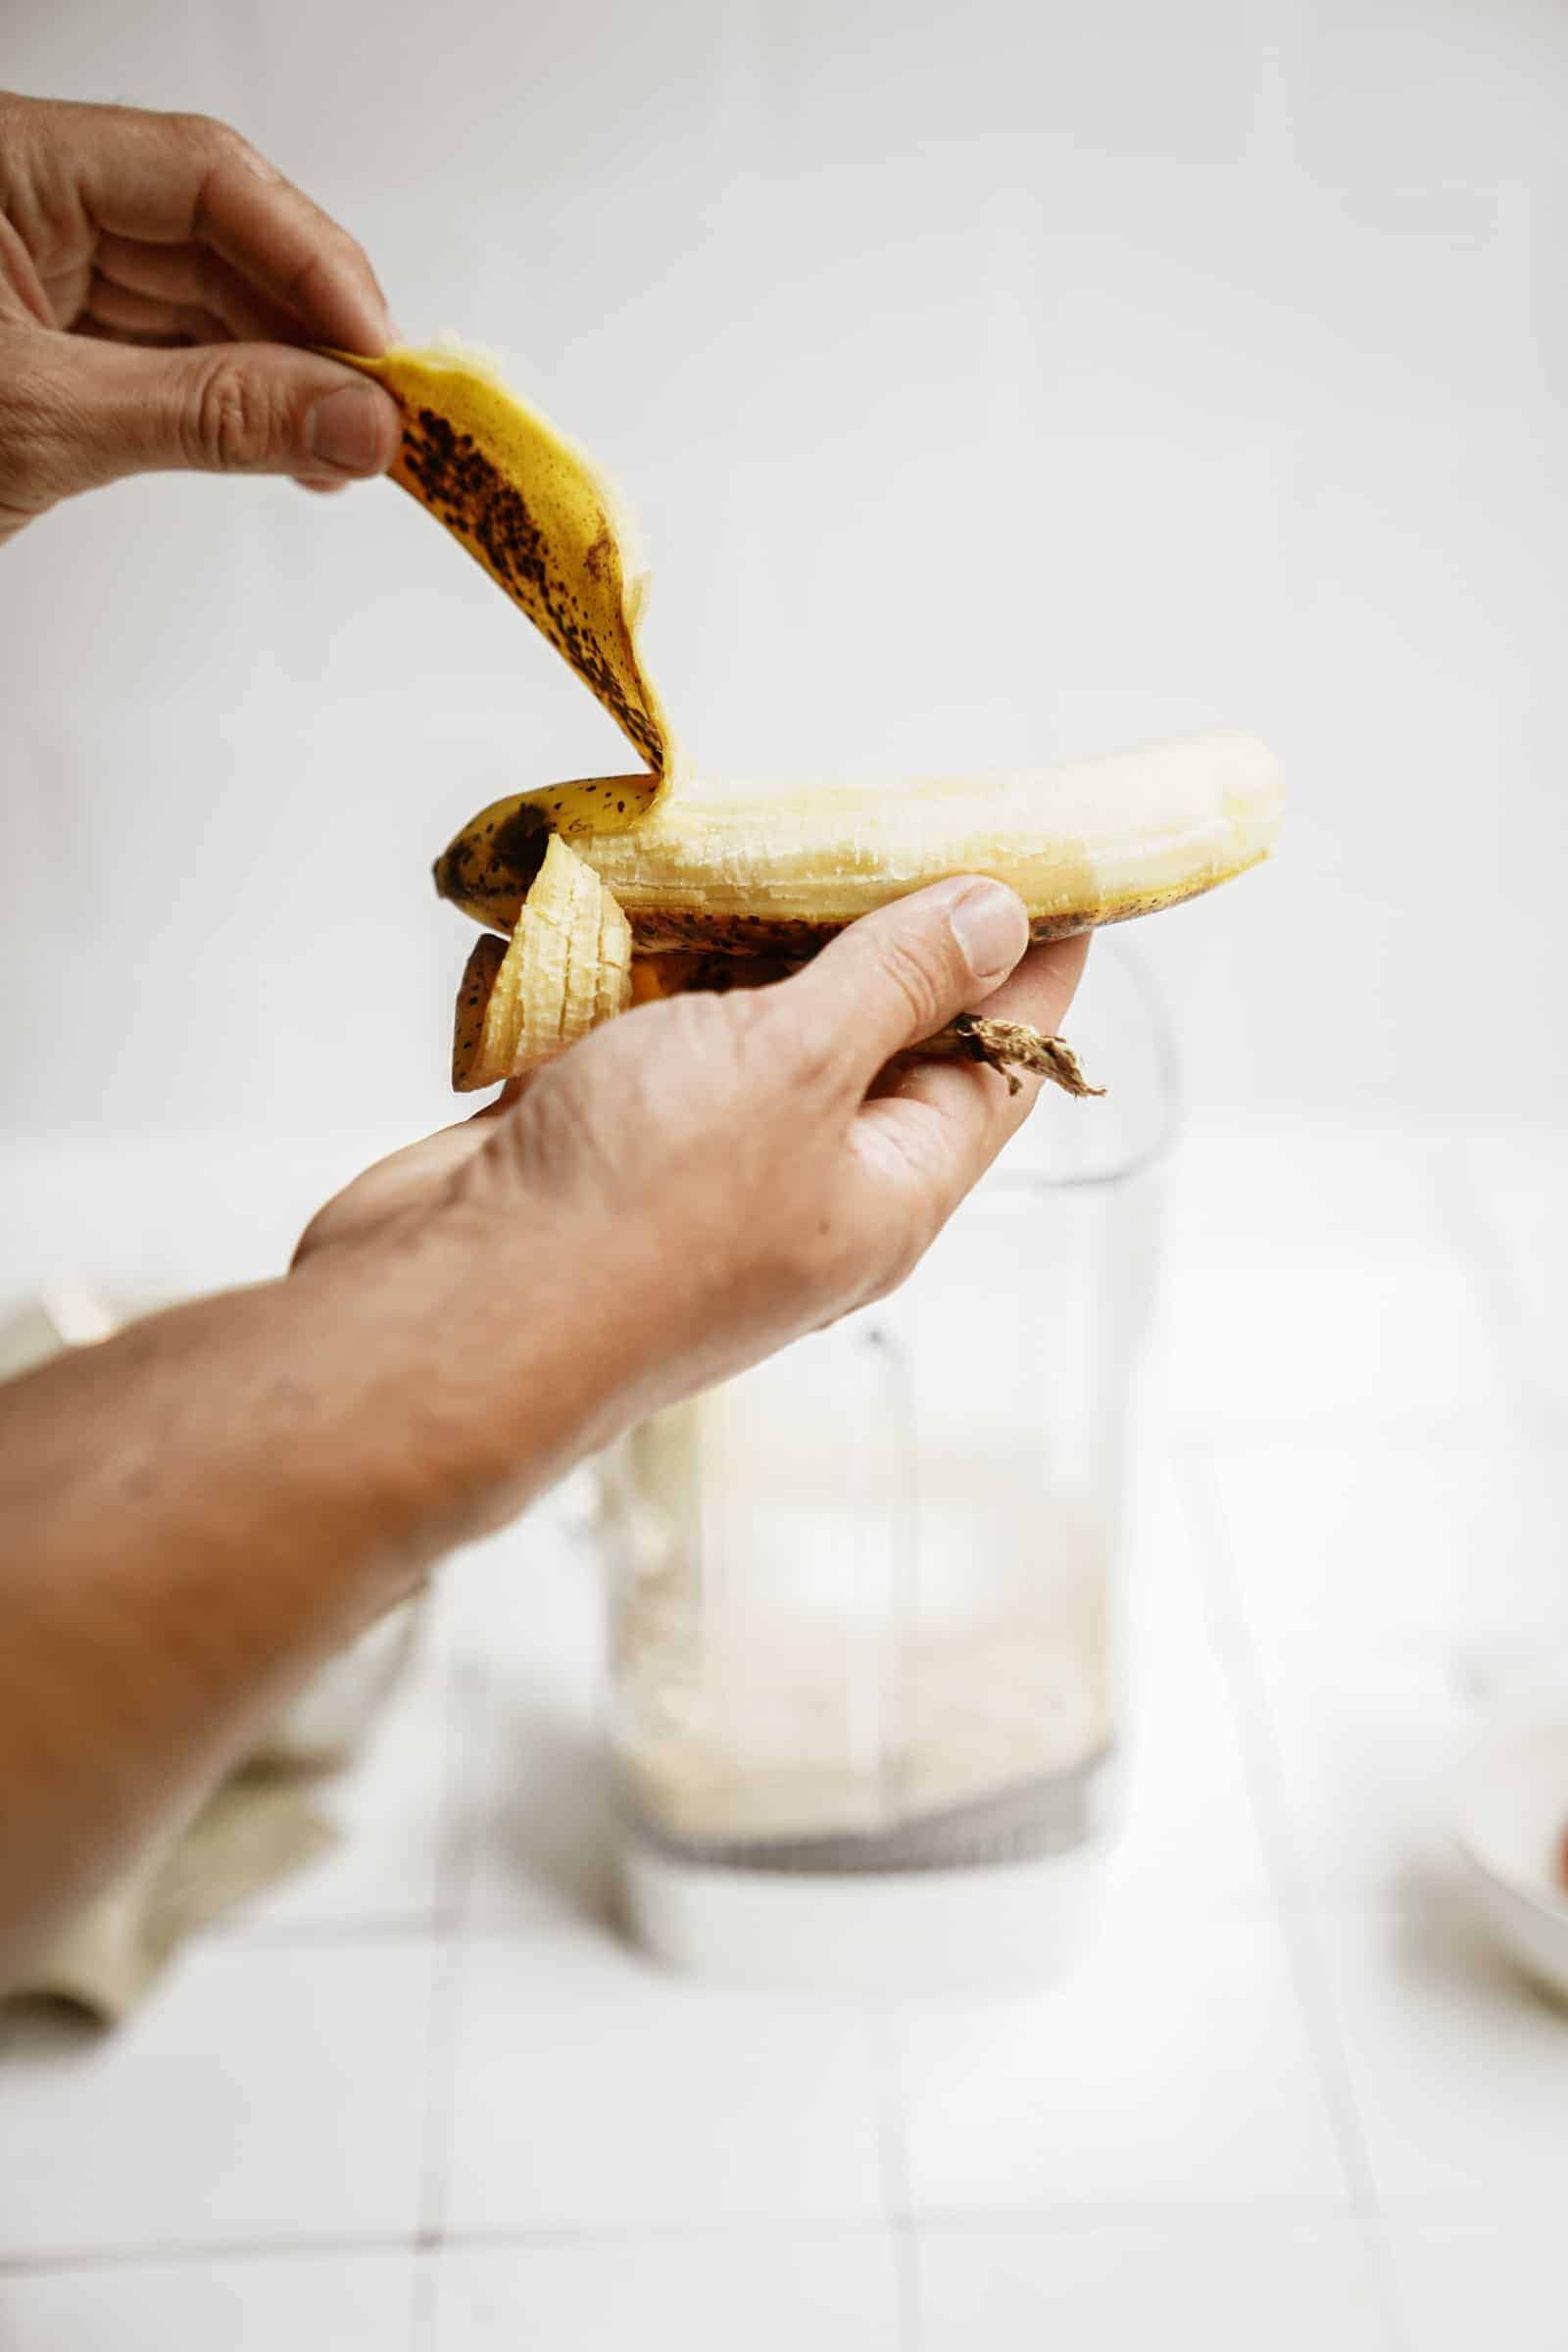 Banana being added into a blender for peanut butter banana pancakes